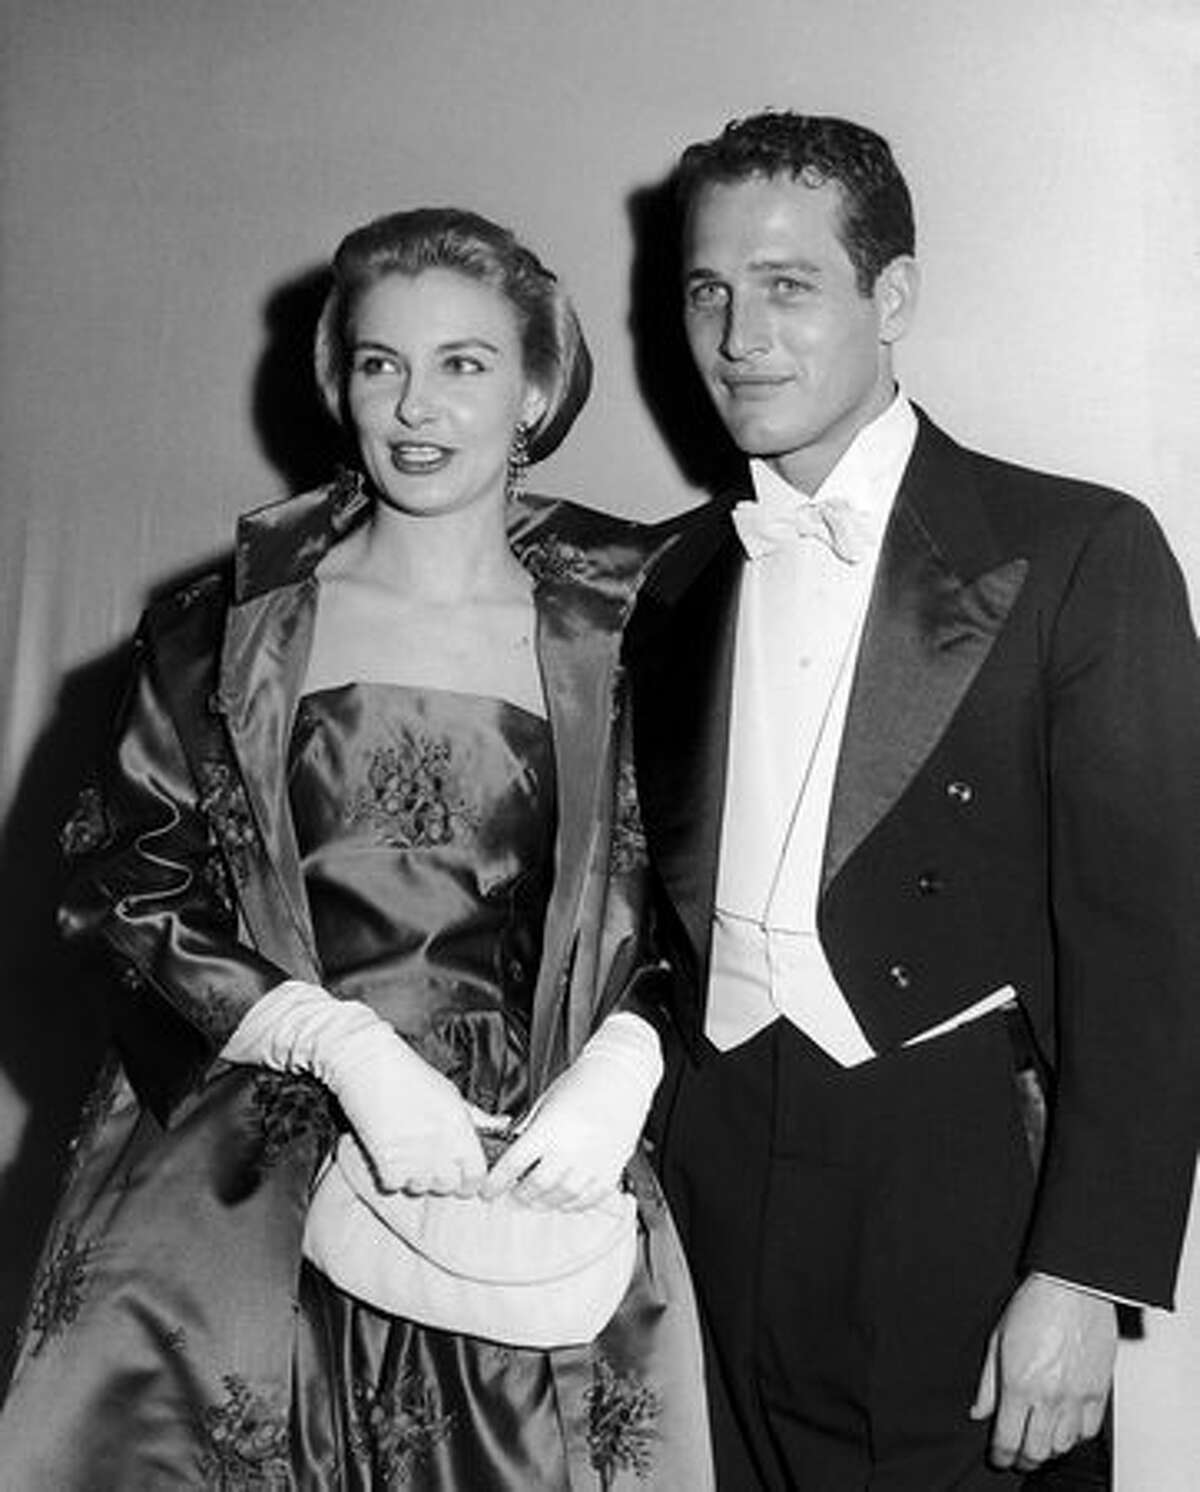 1964: Married actors Paul Newman (1925 - 2008) and Joanne Woodward pose together at the Academy Awards in California.